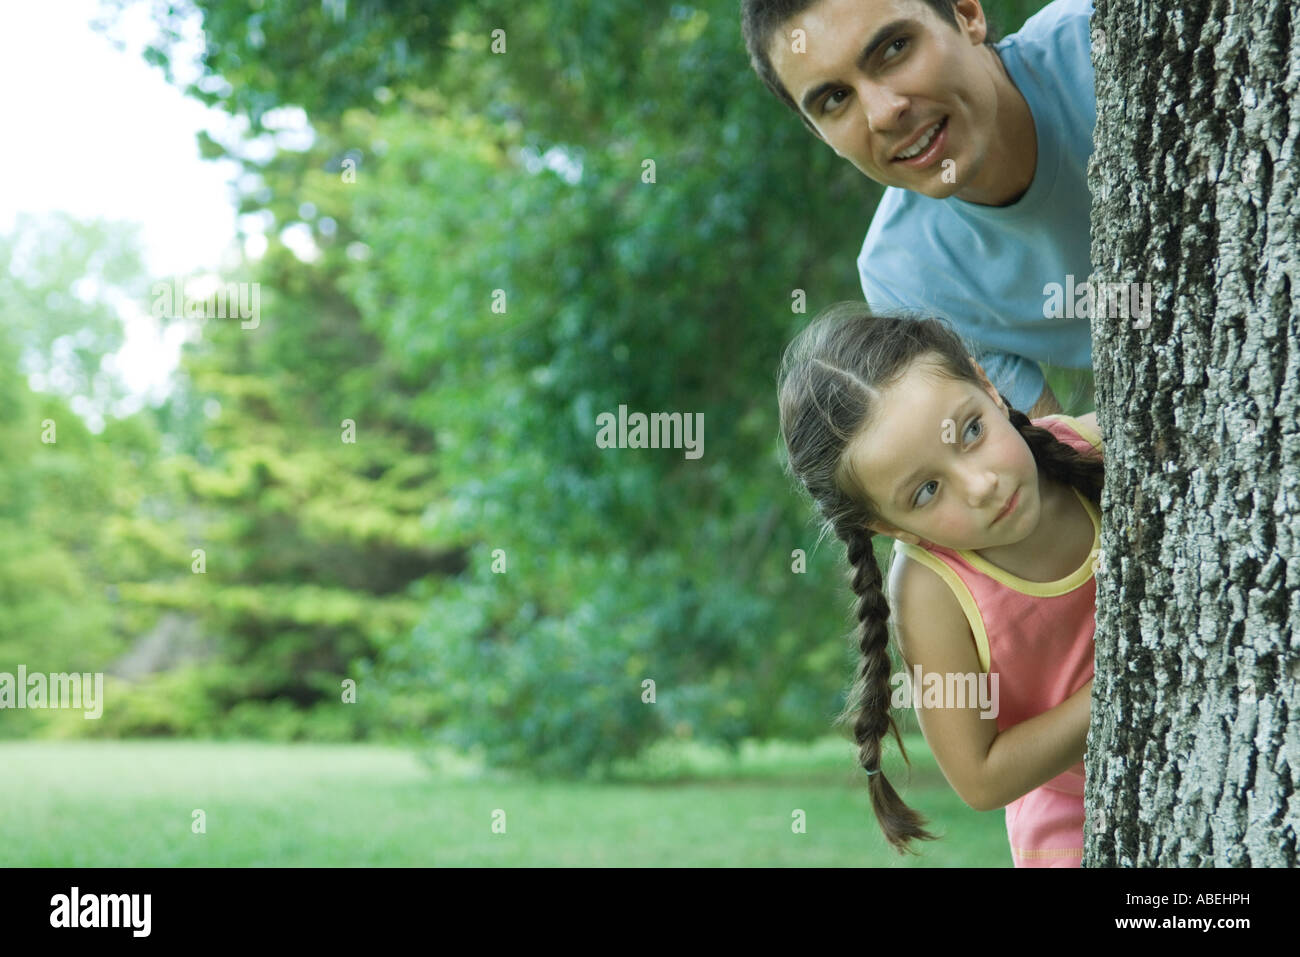 Father and daughter peeking around tree trunk Stock Photo